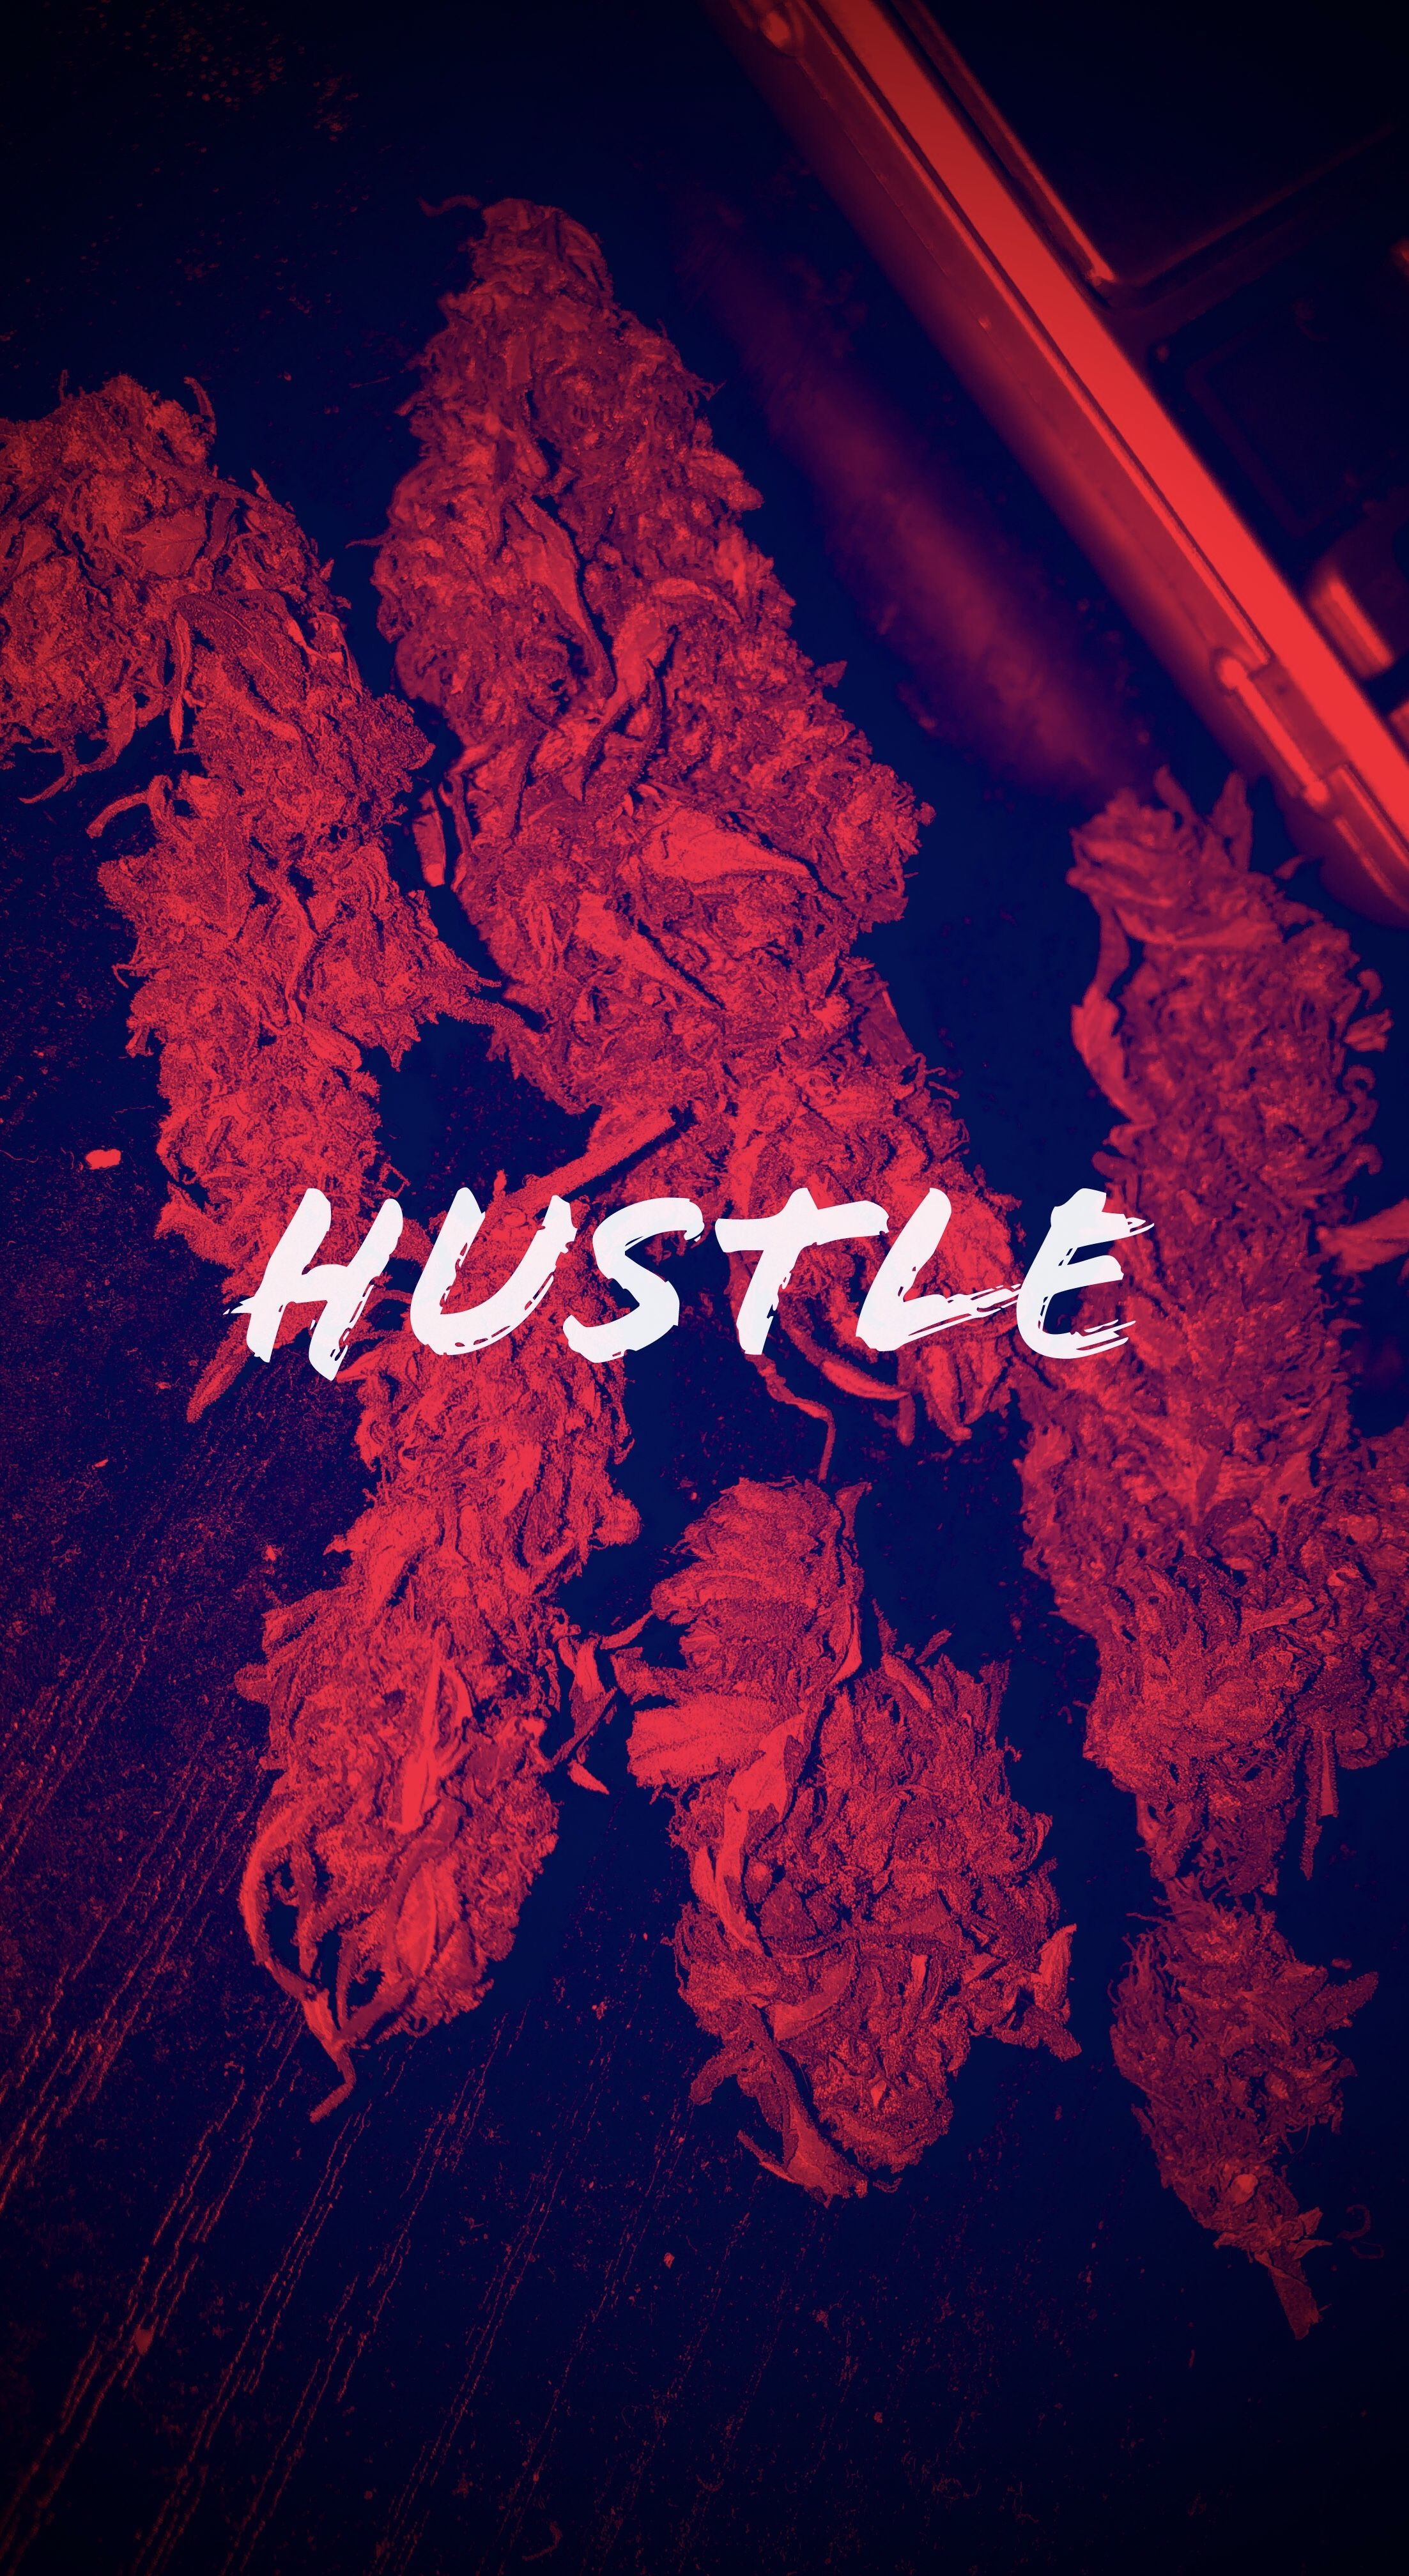 Hustle Wallpaper Buds Thug Life Wallpaper Hustle Quotes Words Wallpaper Get inspired for dope hd wallpaper for